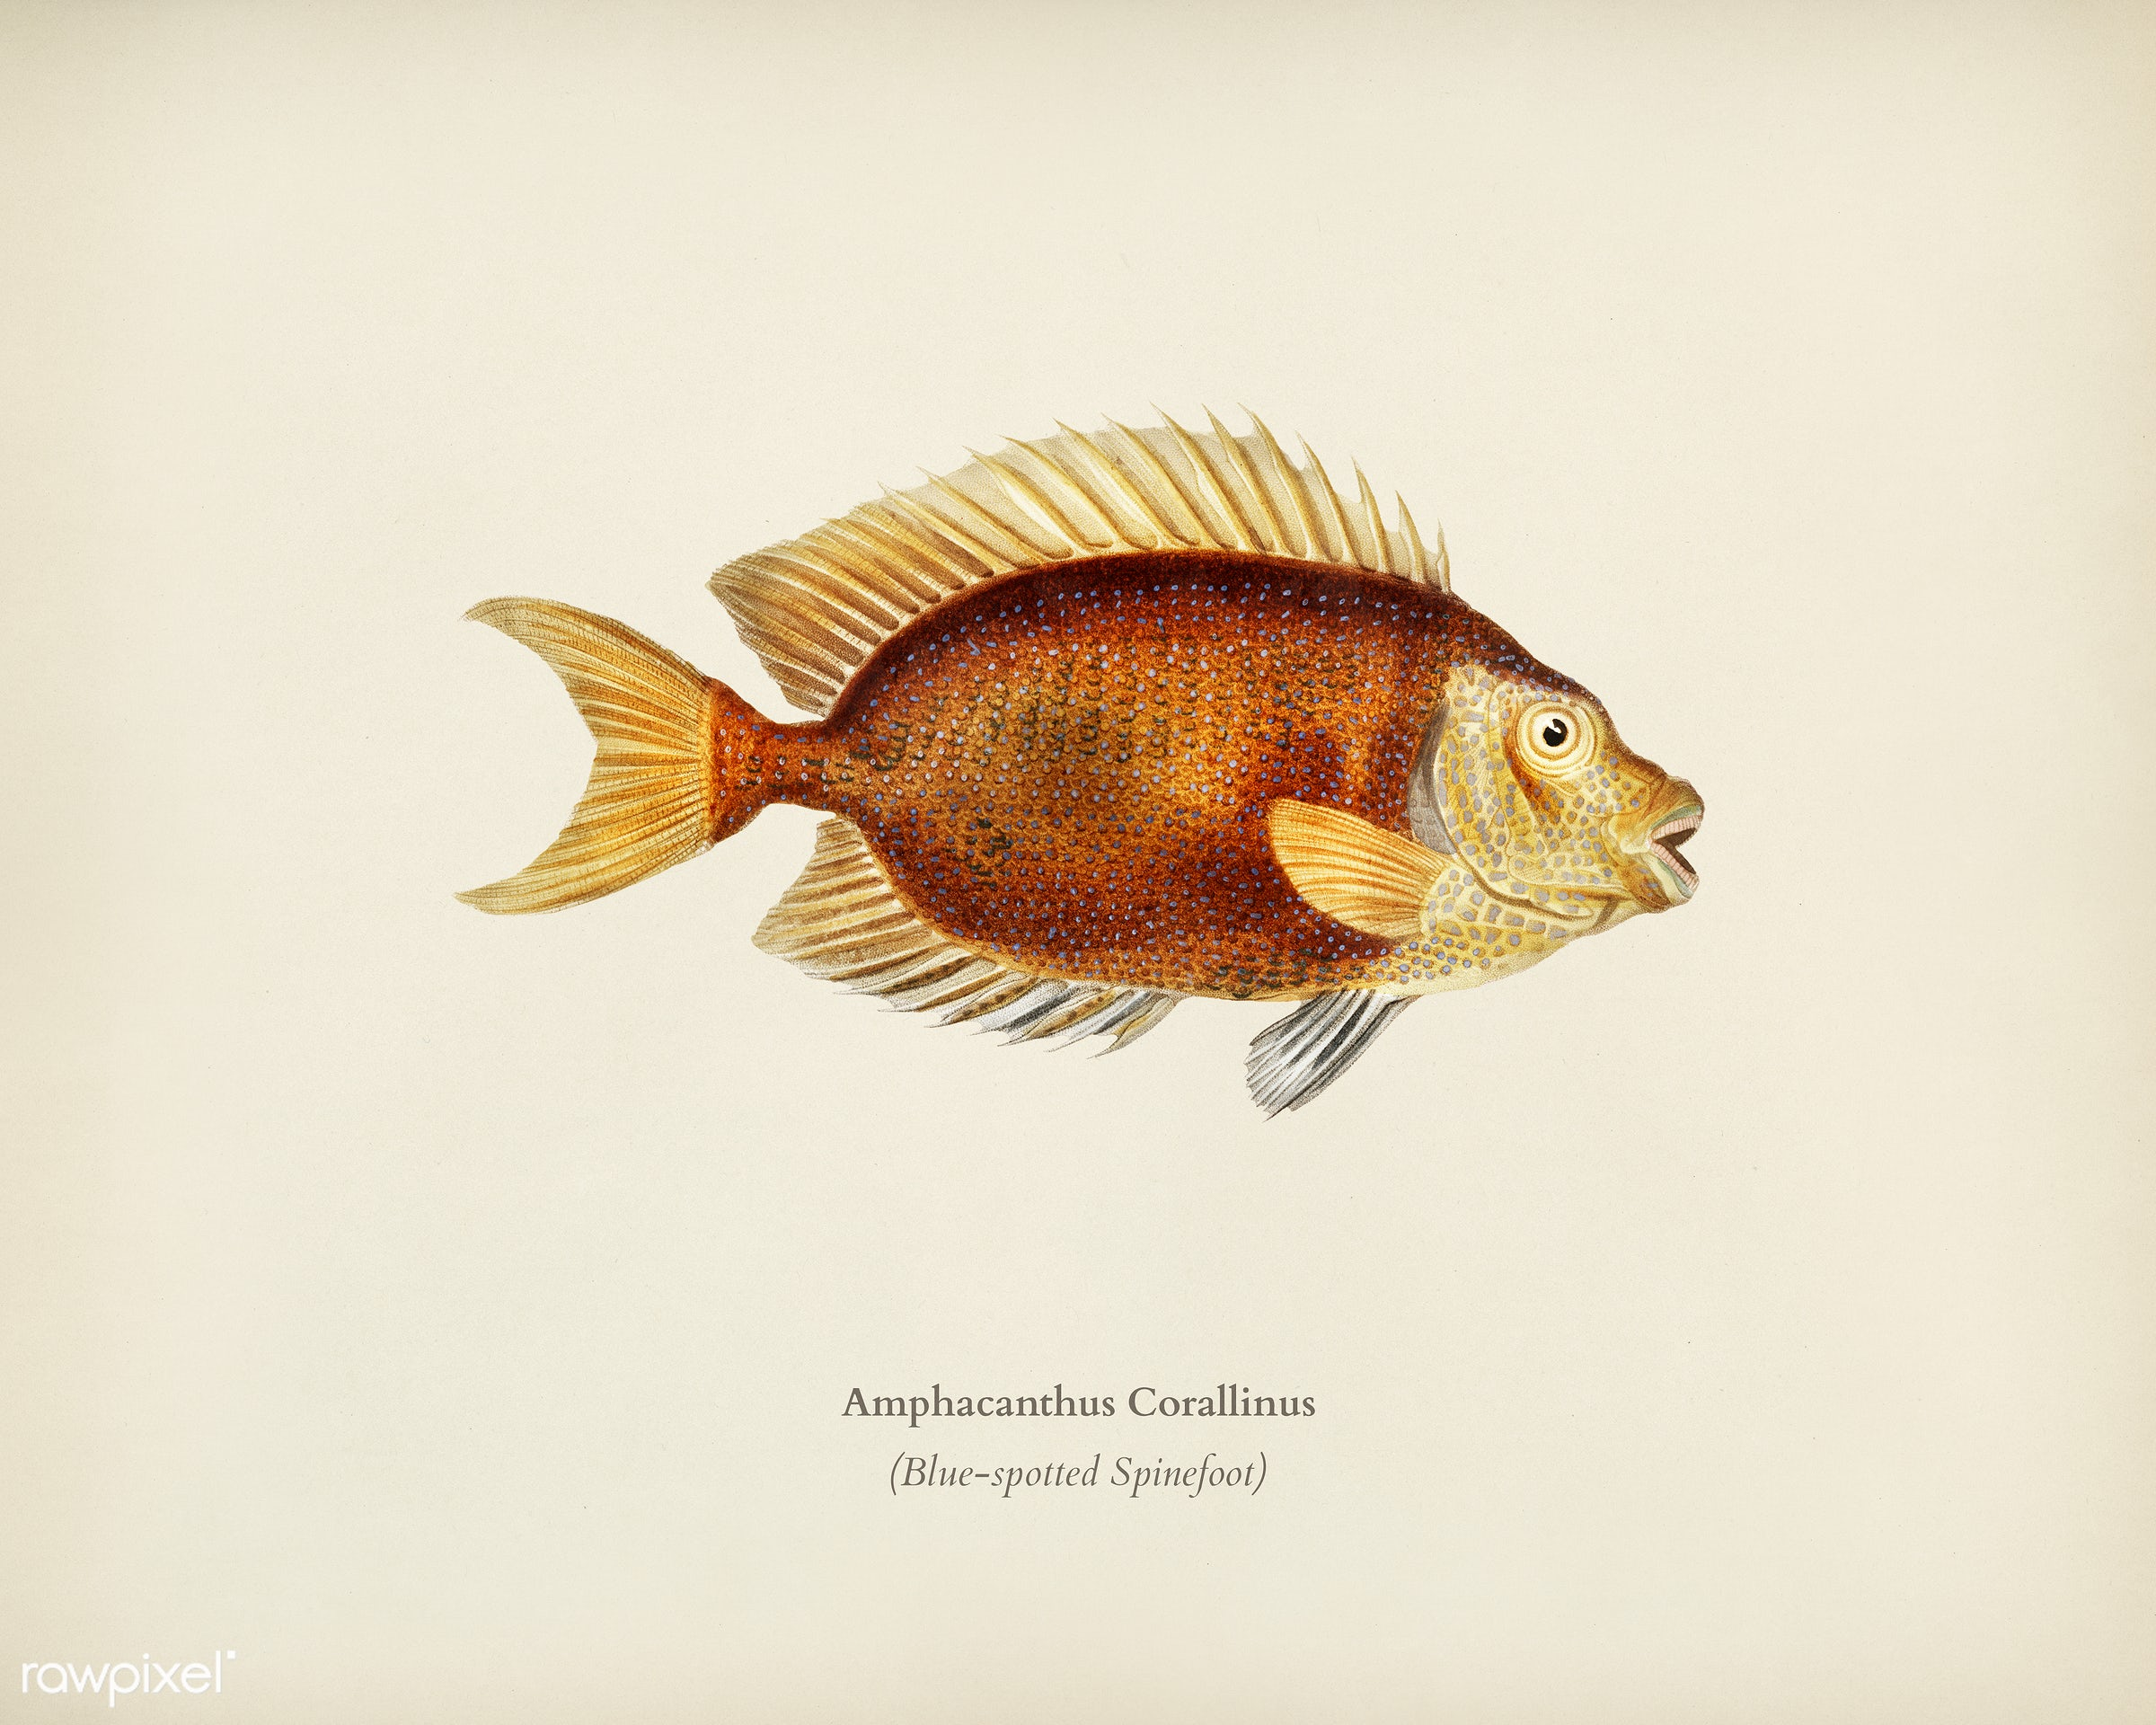 Blue-spotted Spinefoot (Amphacanthus Corallinus) illustrated by Charles Dessalines D' Orbigny (1806-1876). Digitally...